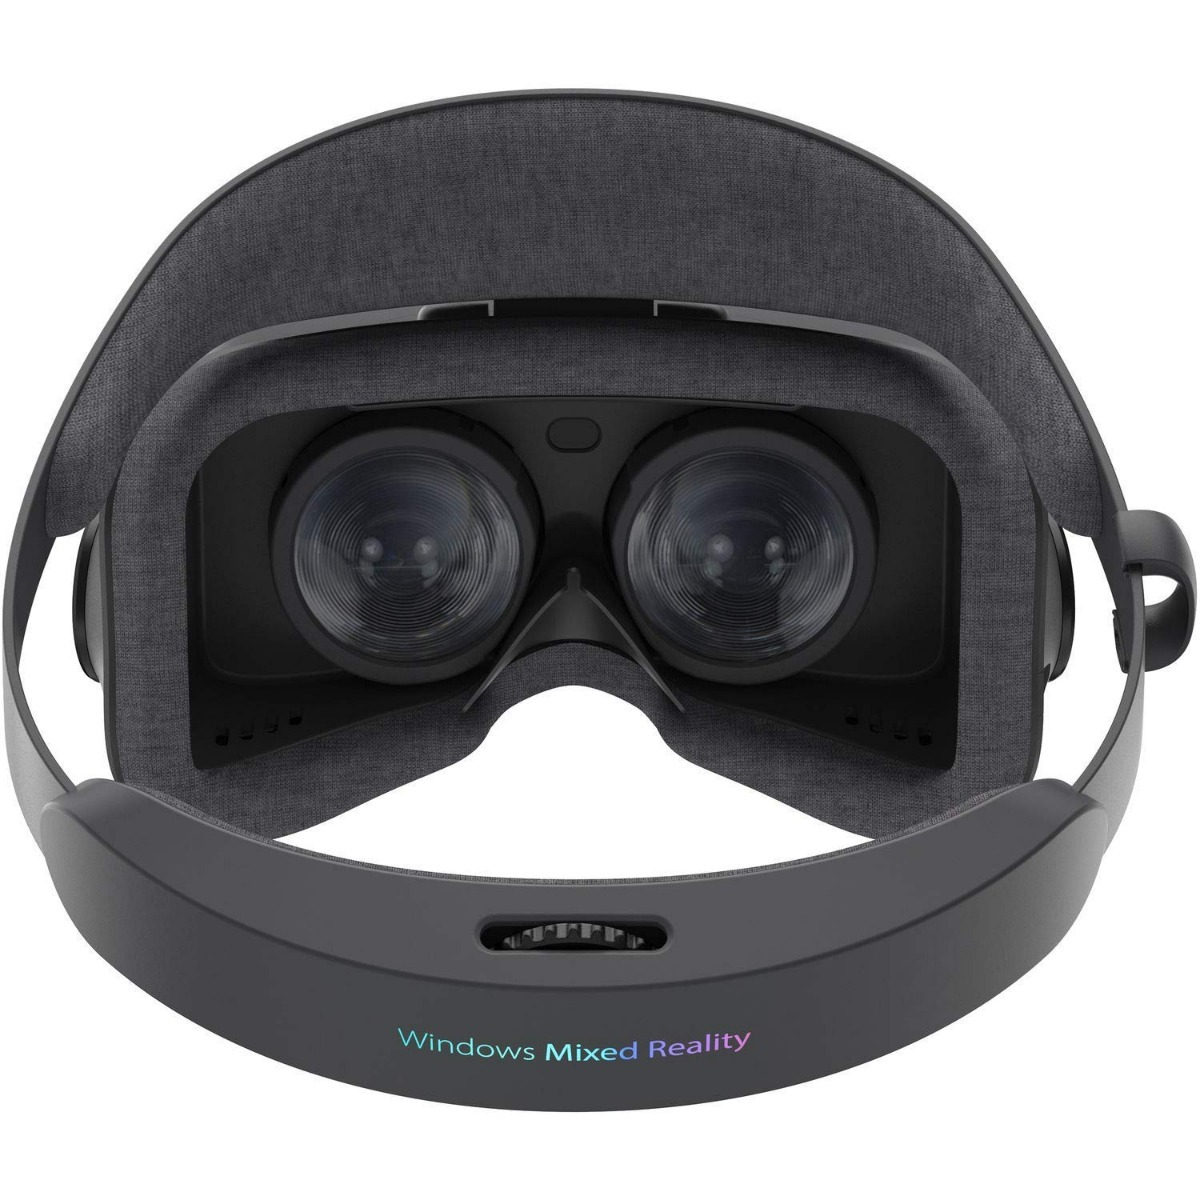 Asus Windows Mixed Reality Headset +controles